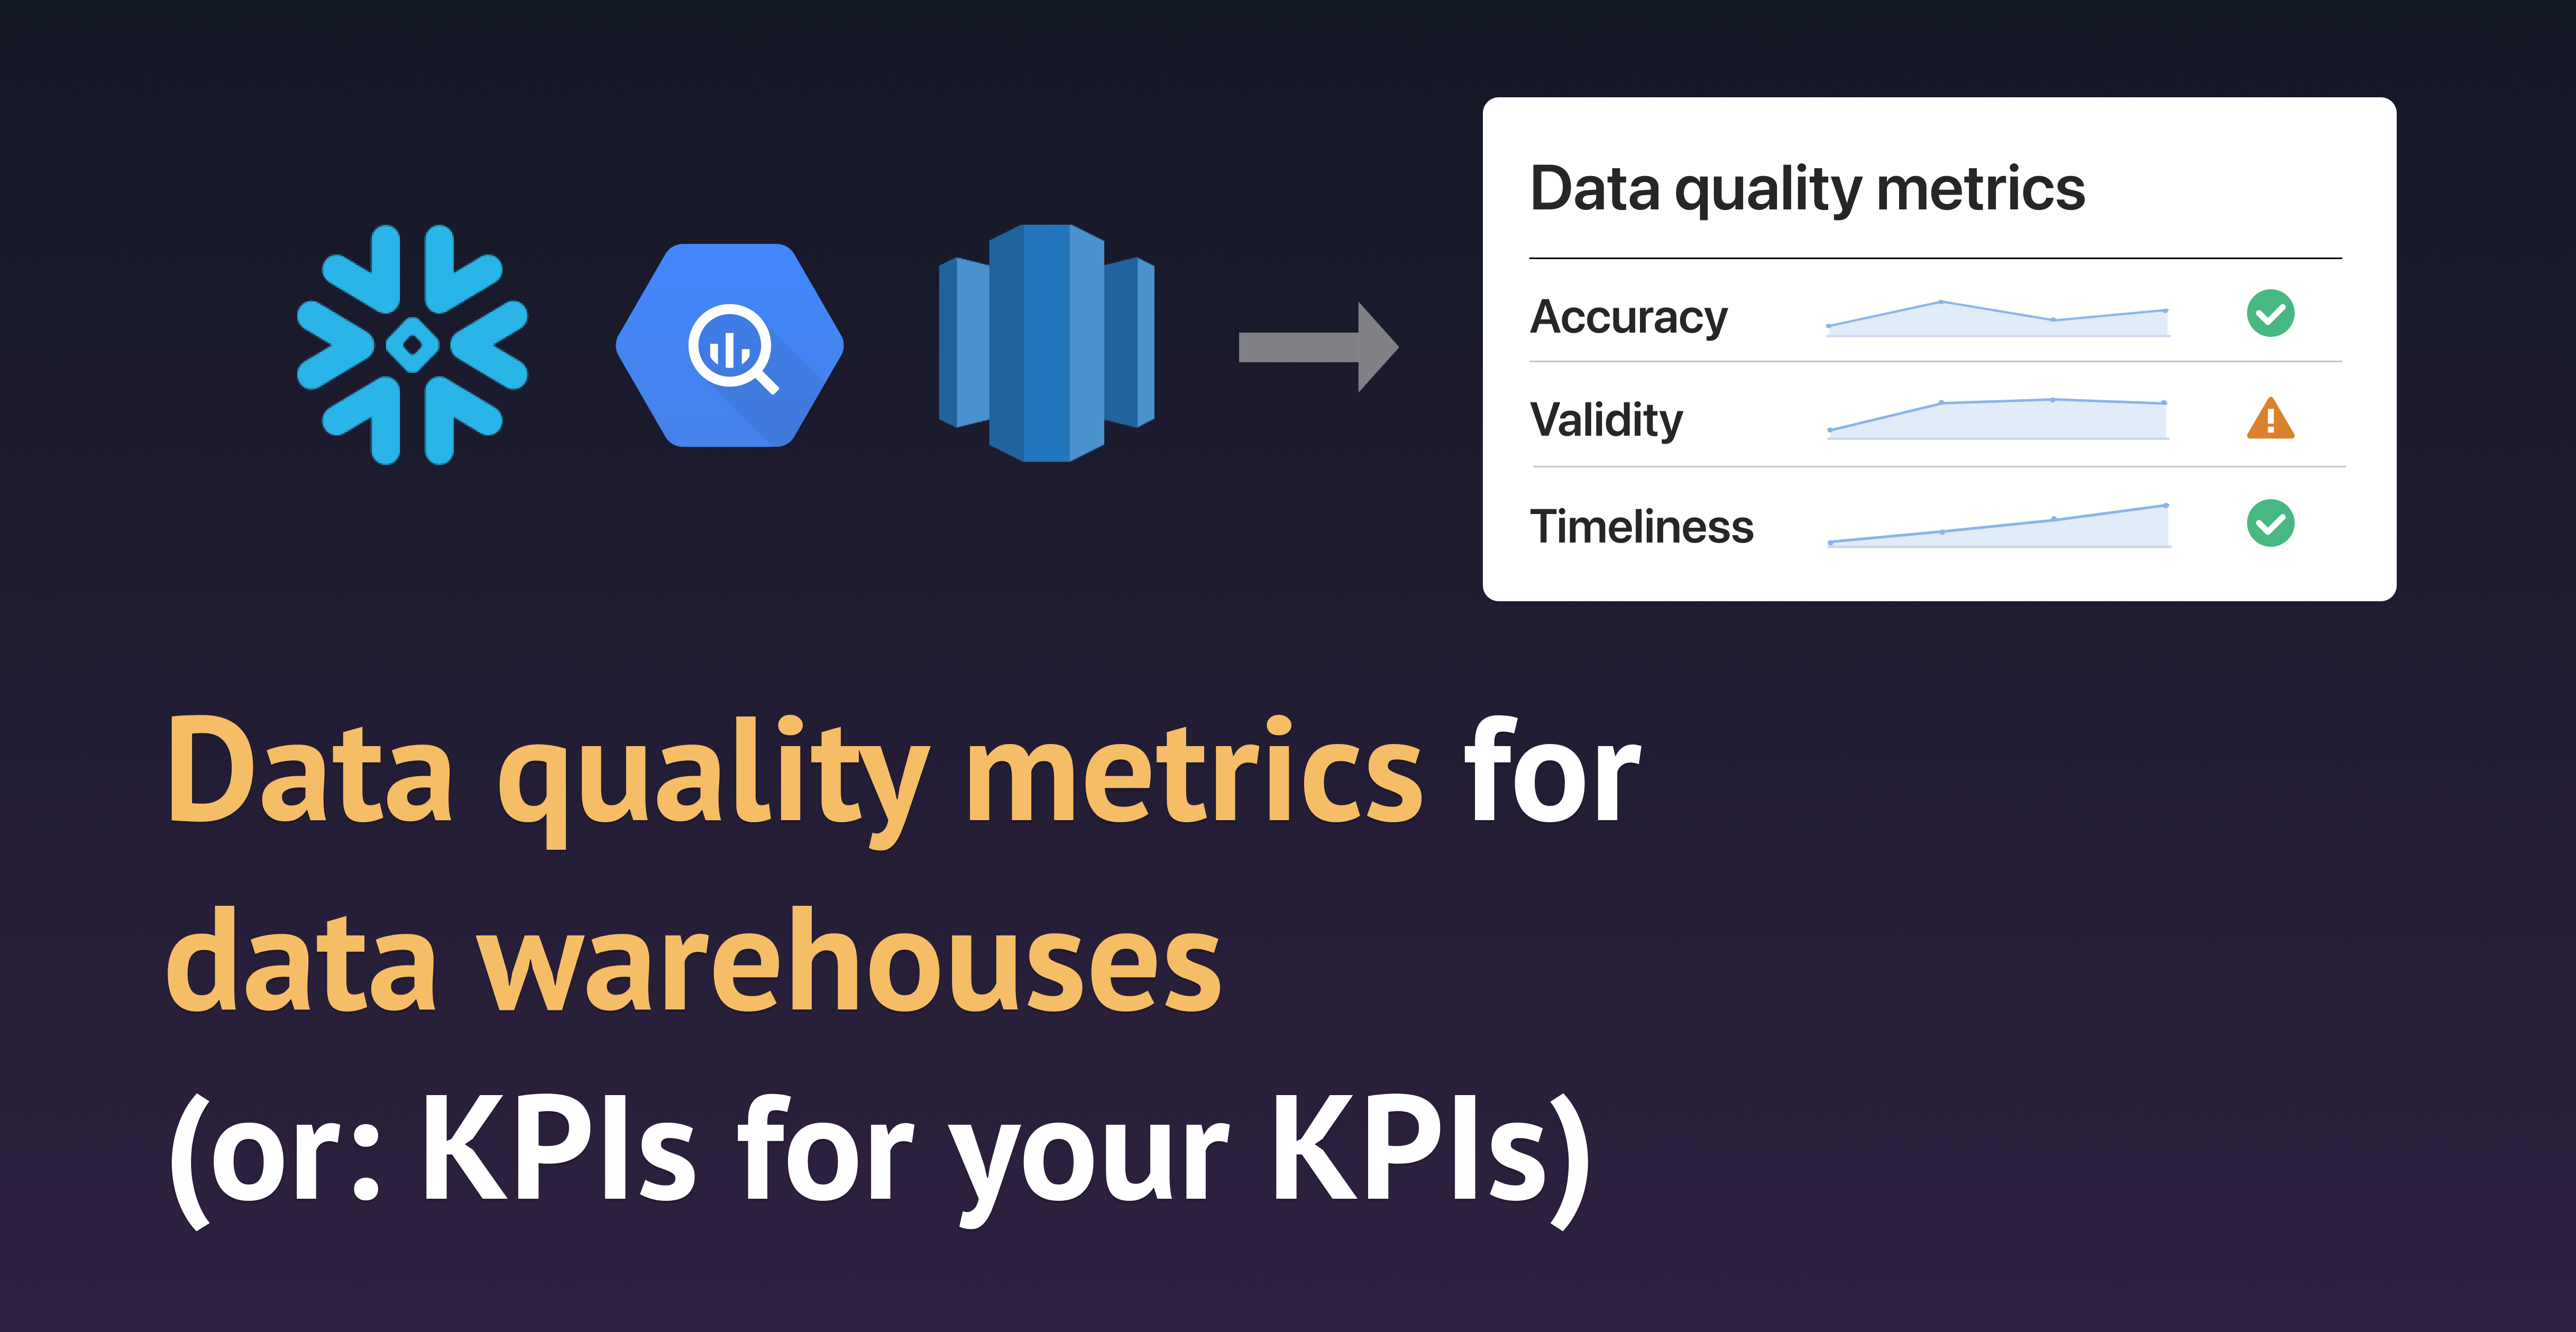 This article is primarily for data practitioners who want to improve the quality of data in their databases and data warehouses, but also those whose